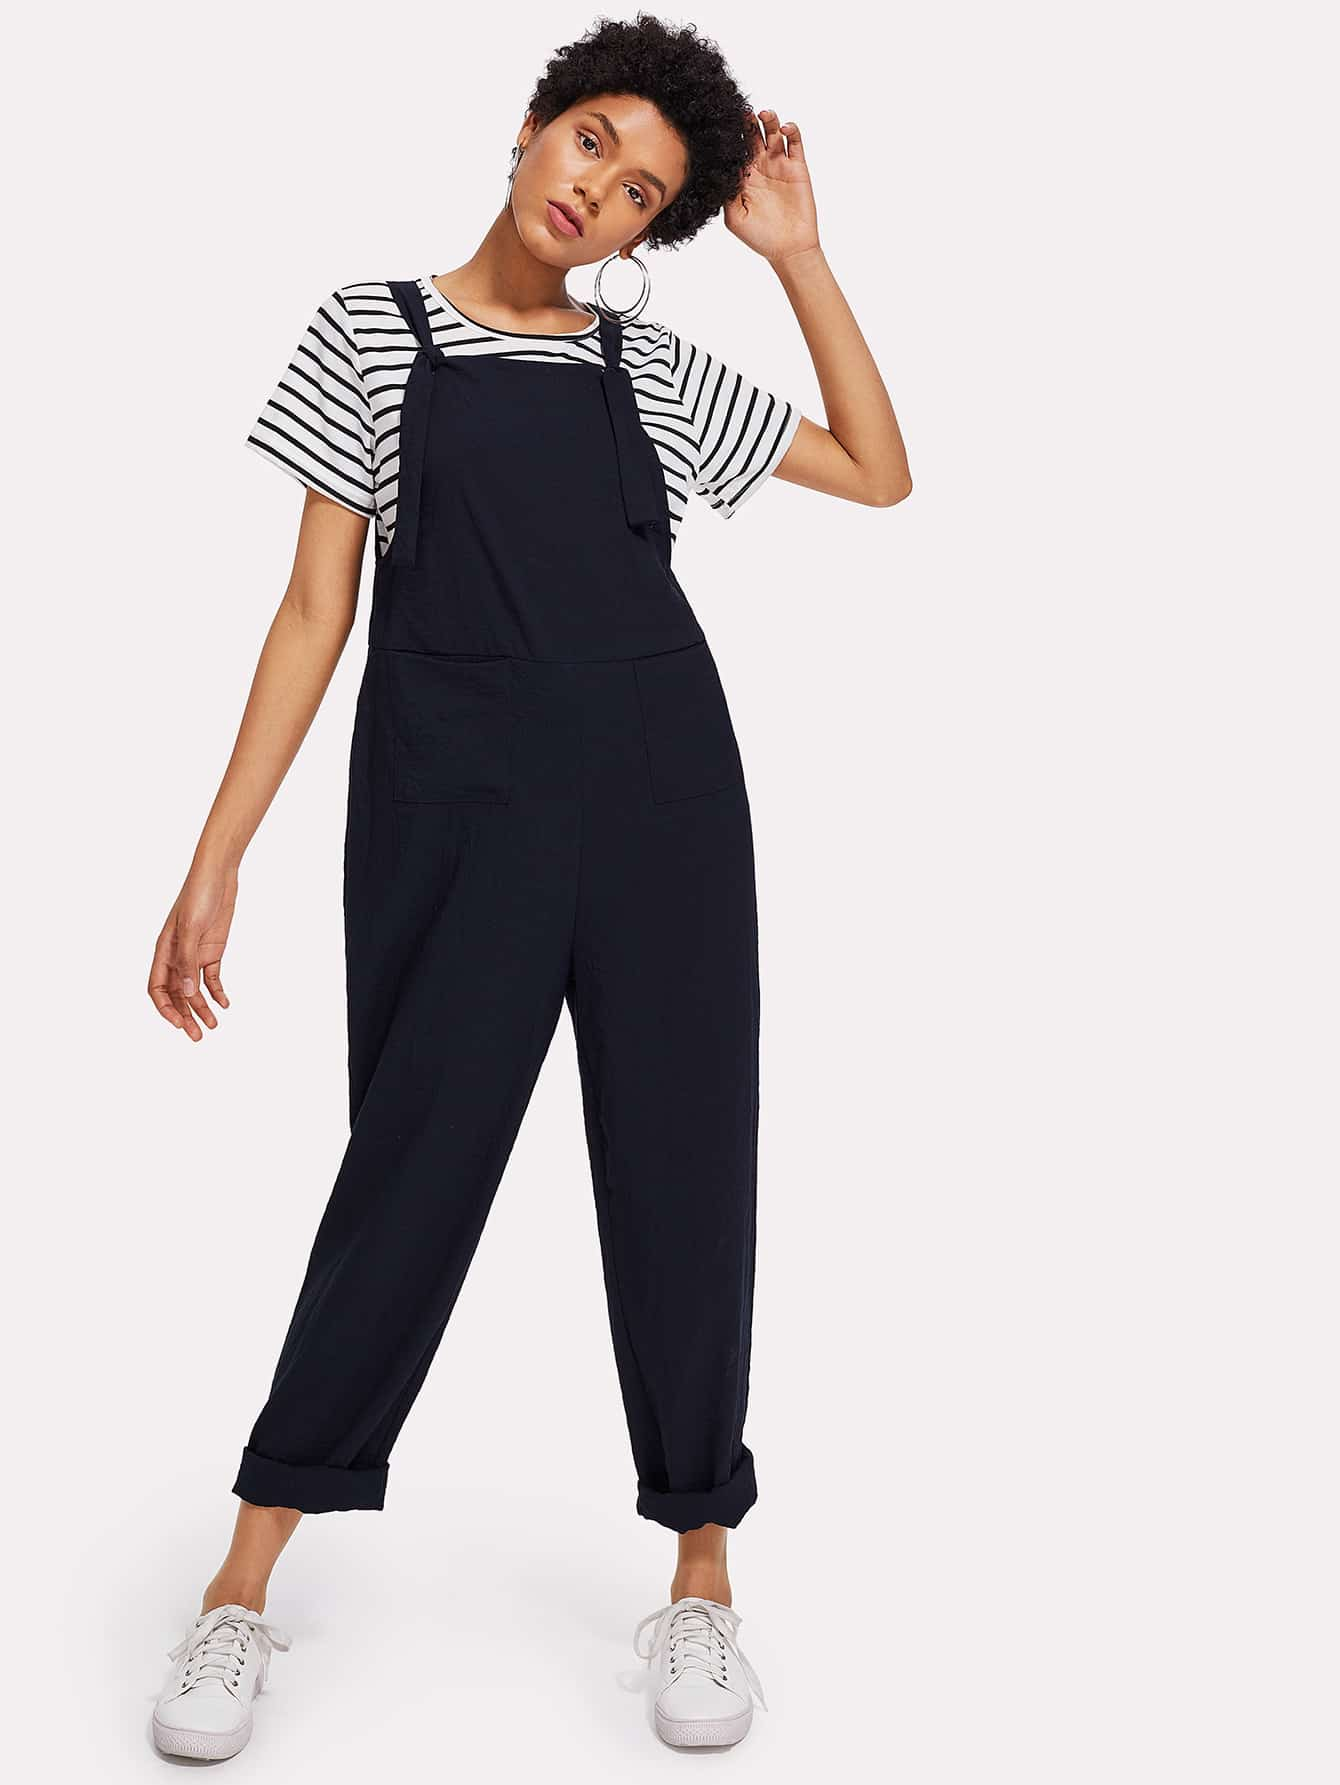 Tied Strap Pocket Front Pinafore Jumpsuit ring detail striped pinafore jumpsuit